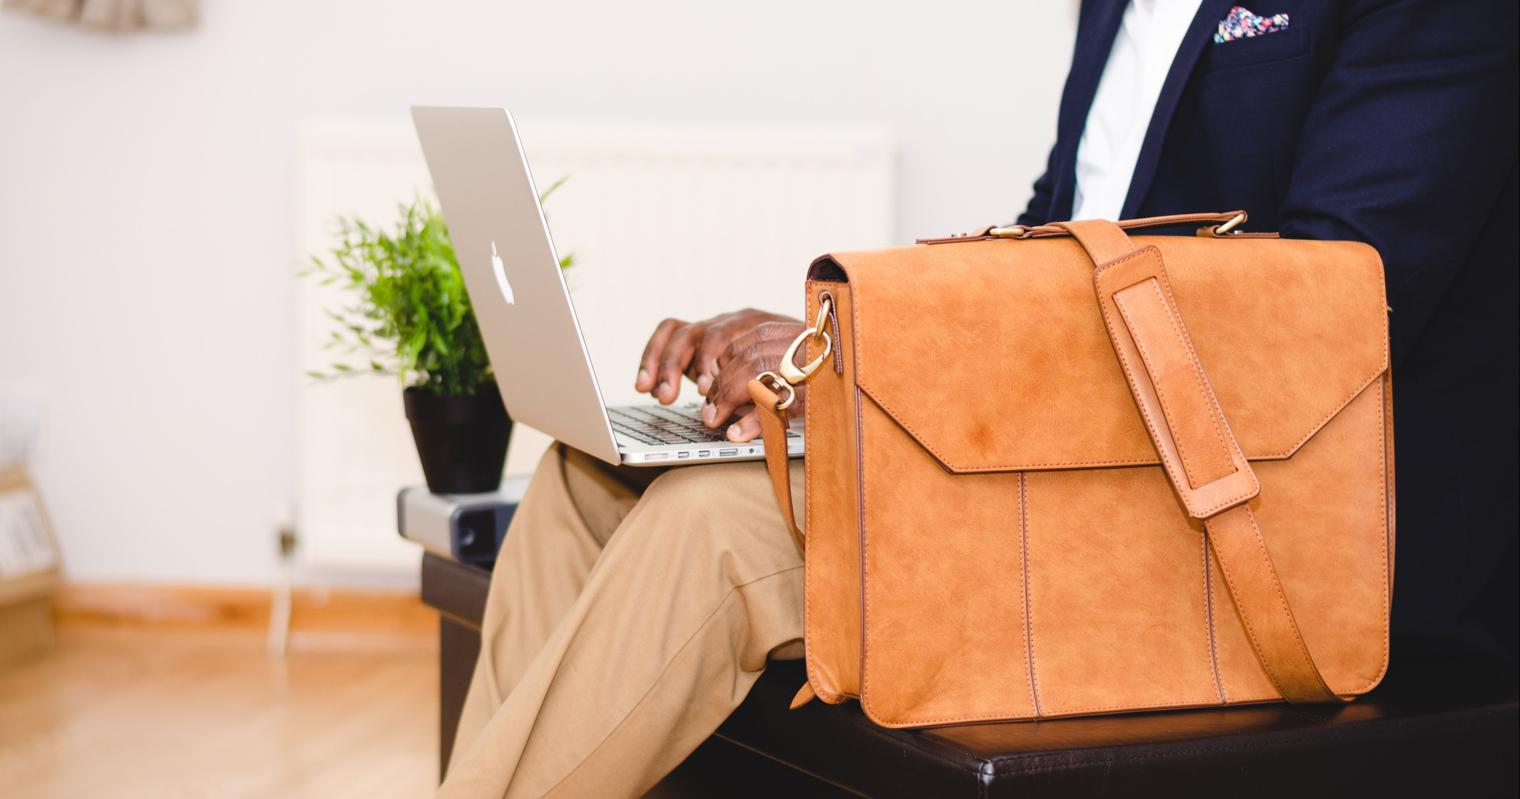 10 HBCUs With Strong Business Programs